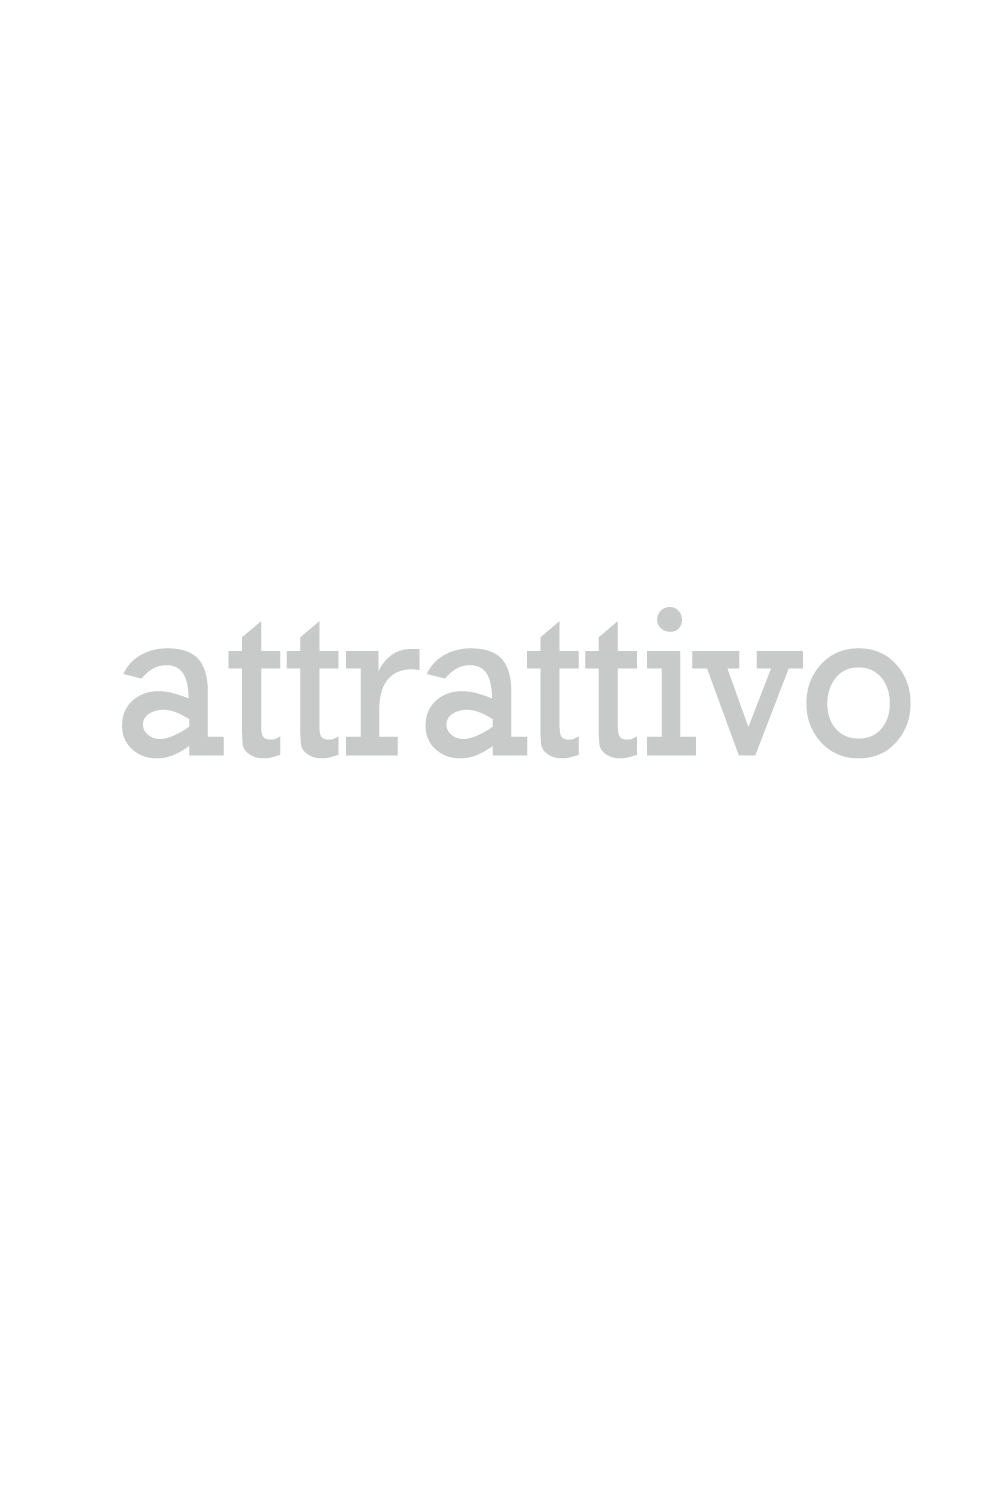 https://www.attrattivo.gr/media/catalog/product/cache/2/image/1200x1800/9df78eab33525d08d6e5fb8d27136e95/5/2/5207251185134_1.jpg